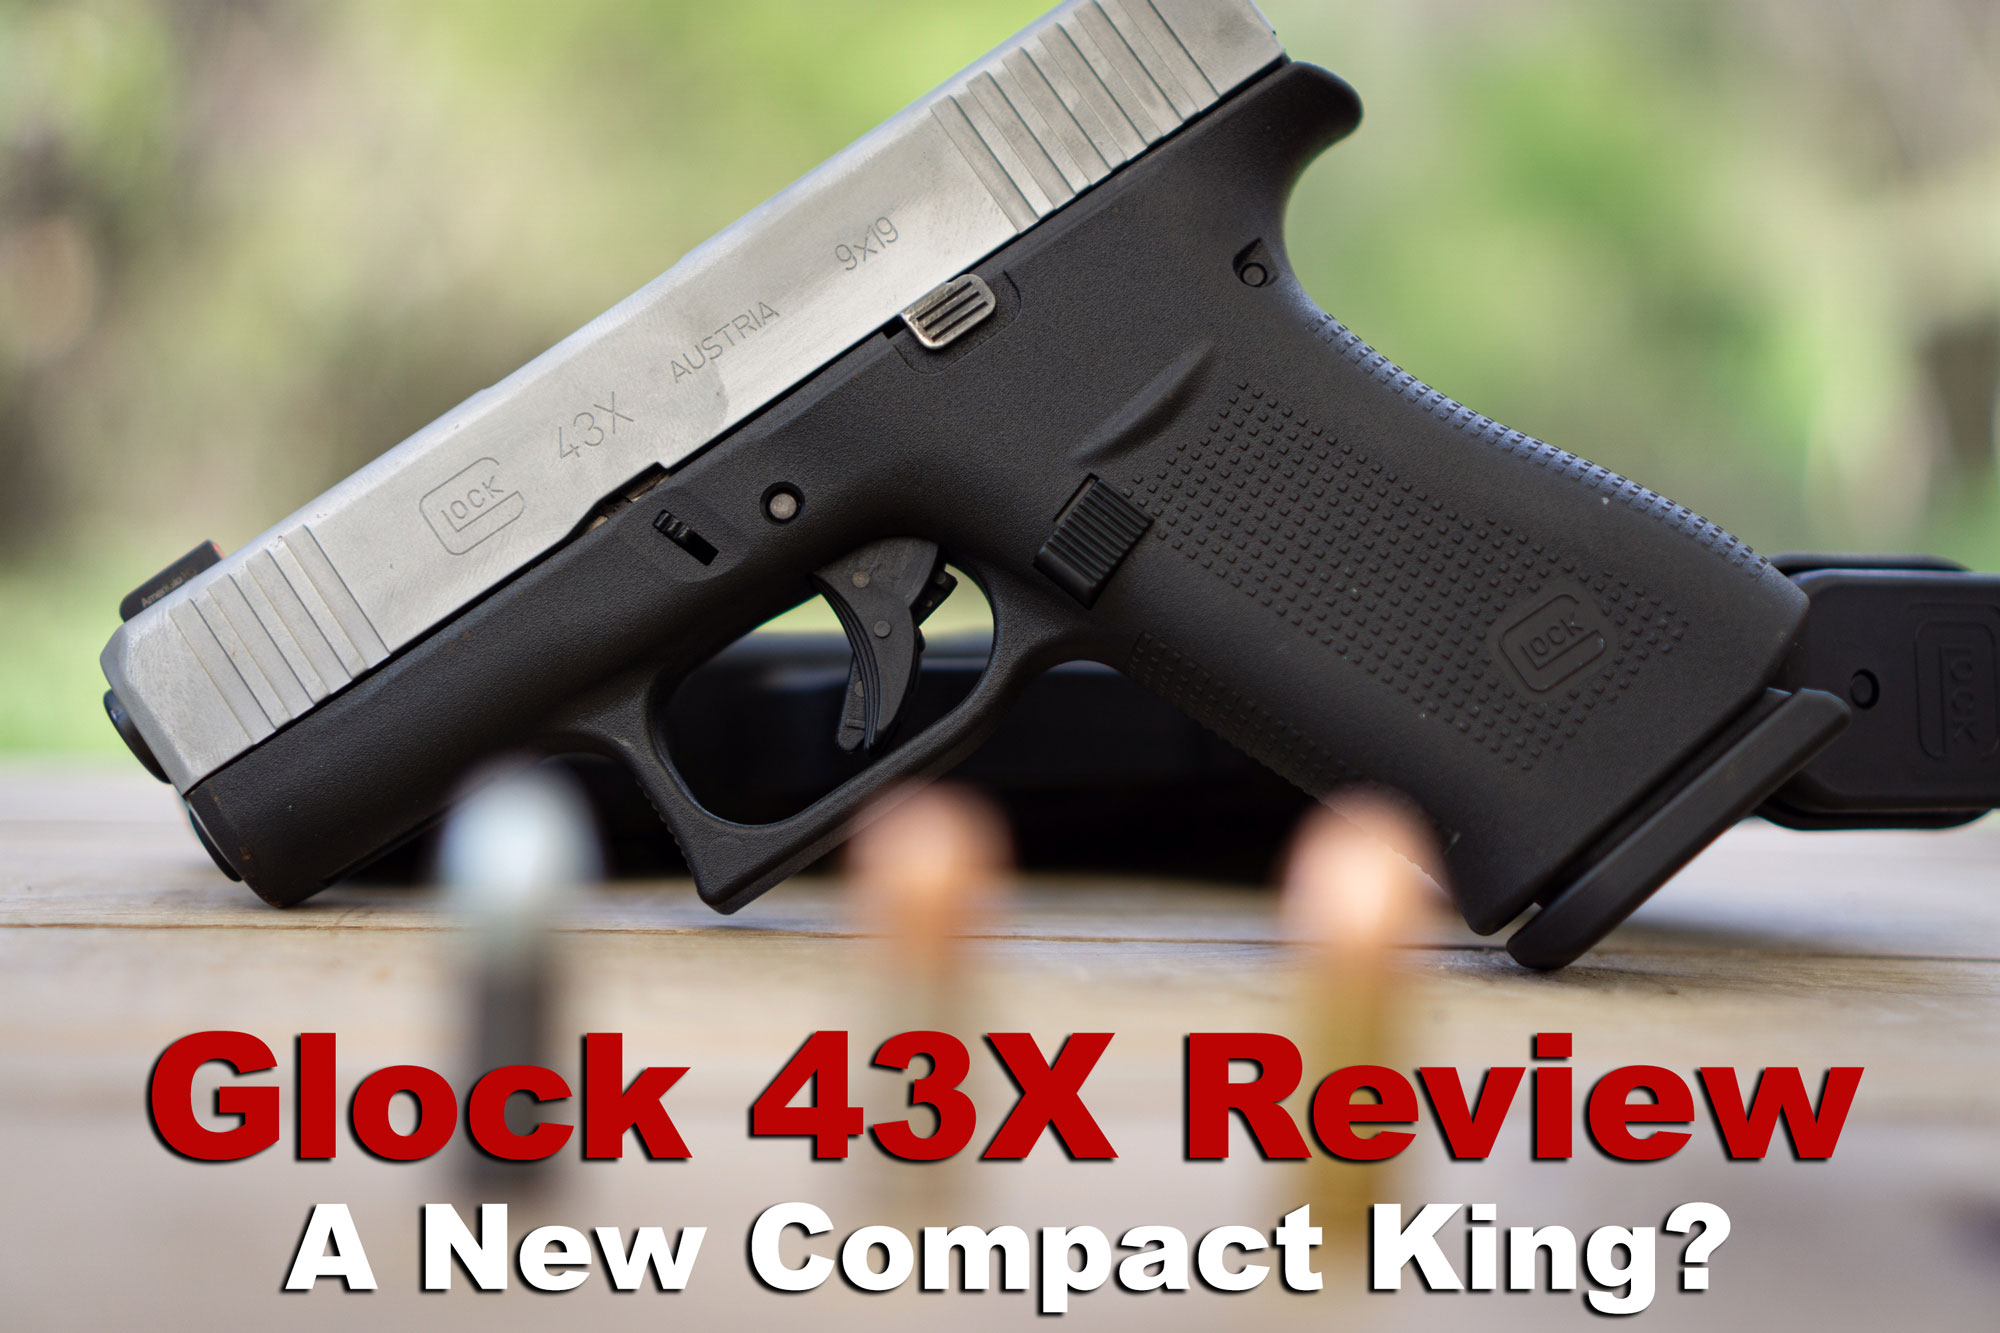 Glock 43X Review pistol on a table with ammo